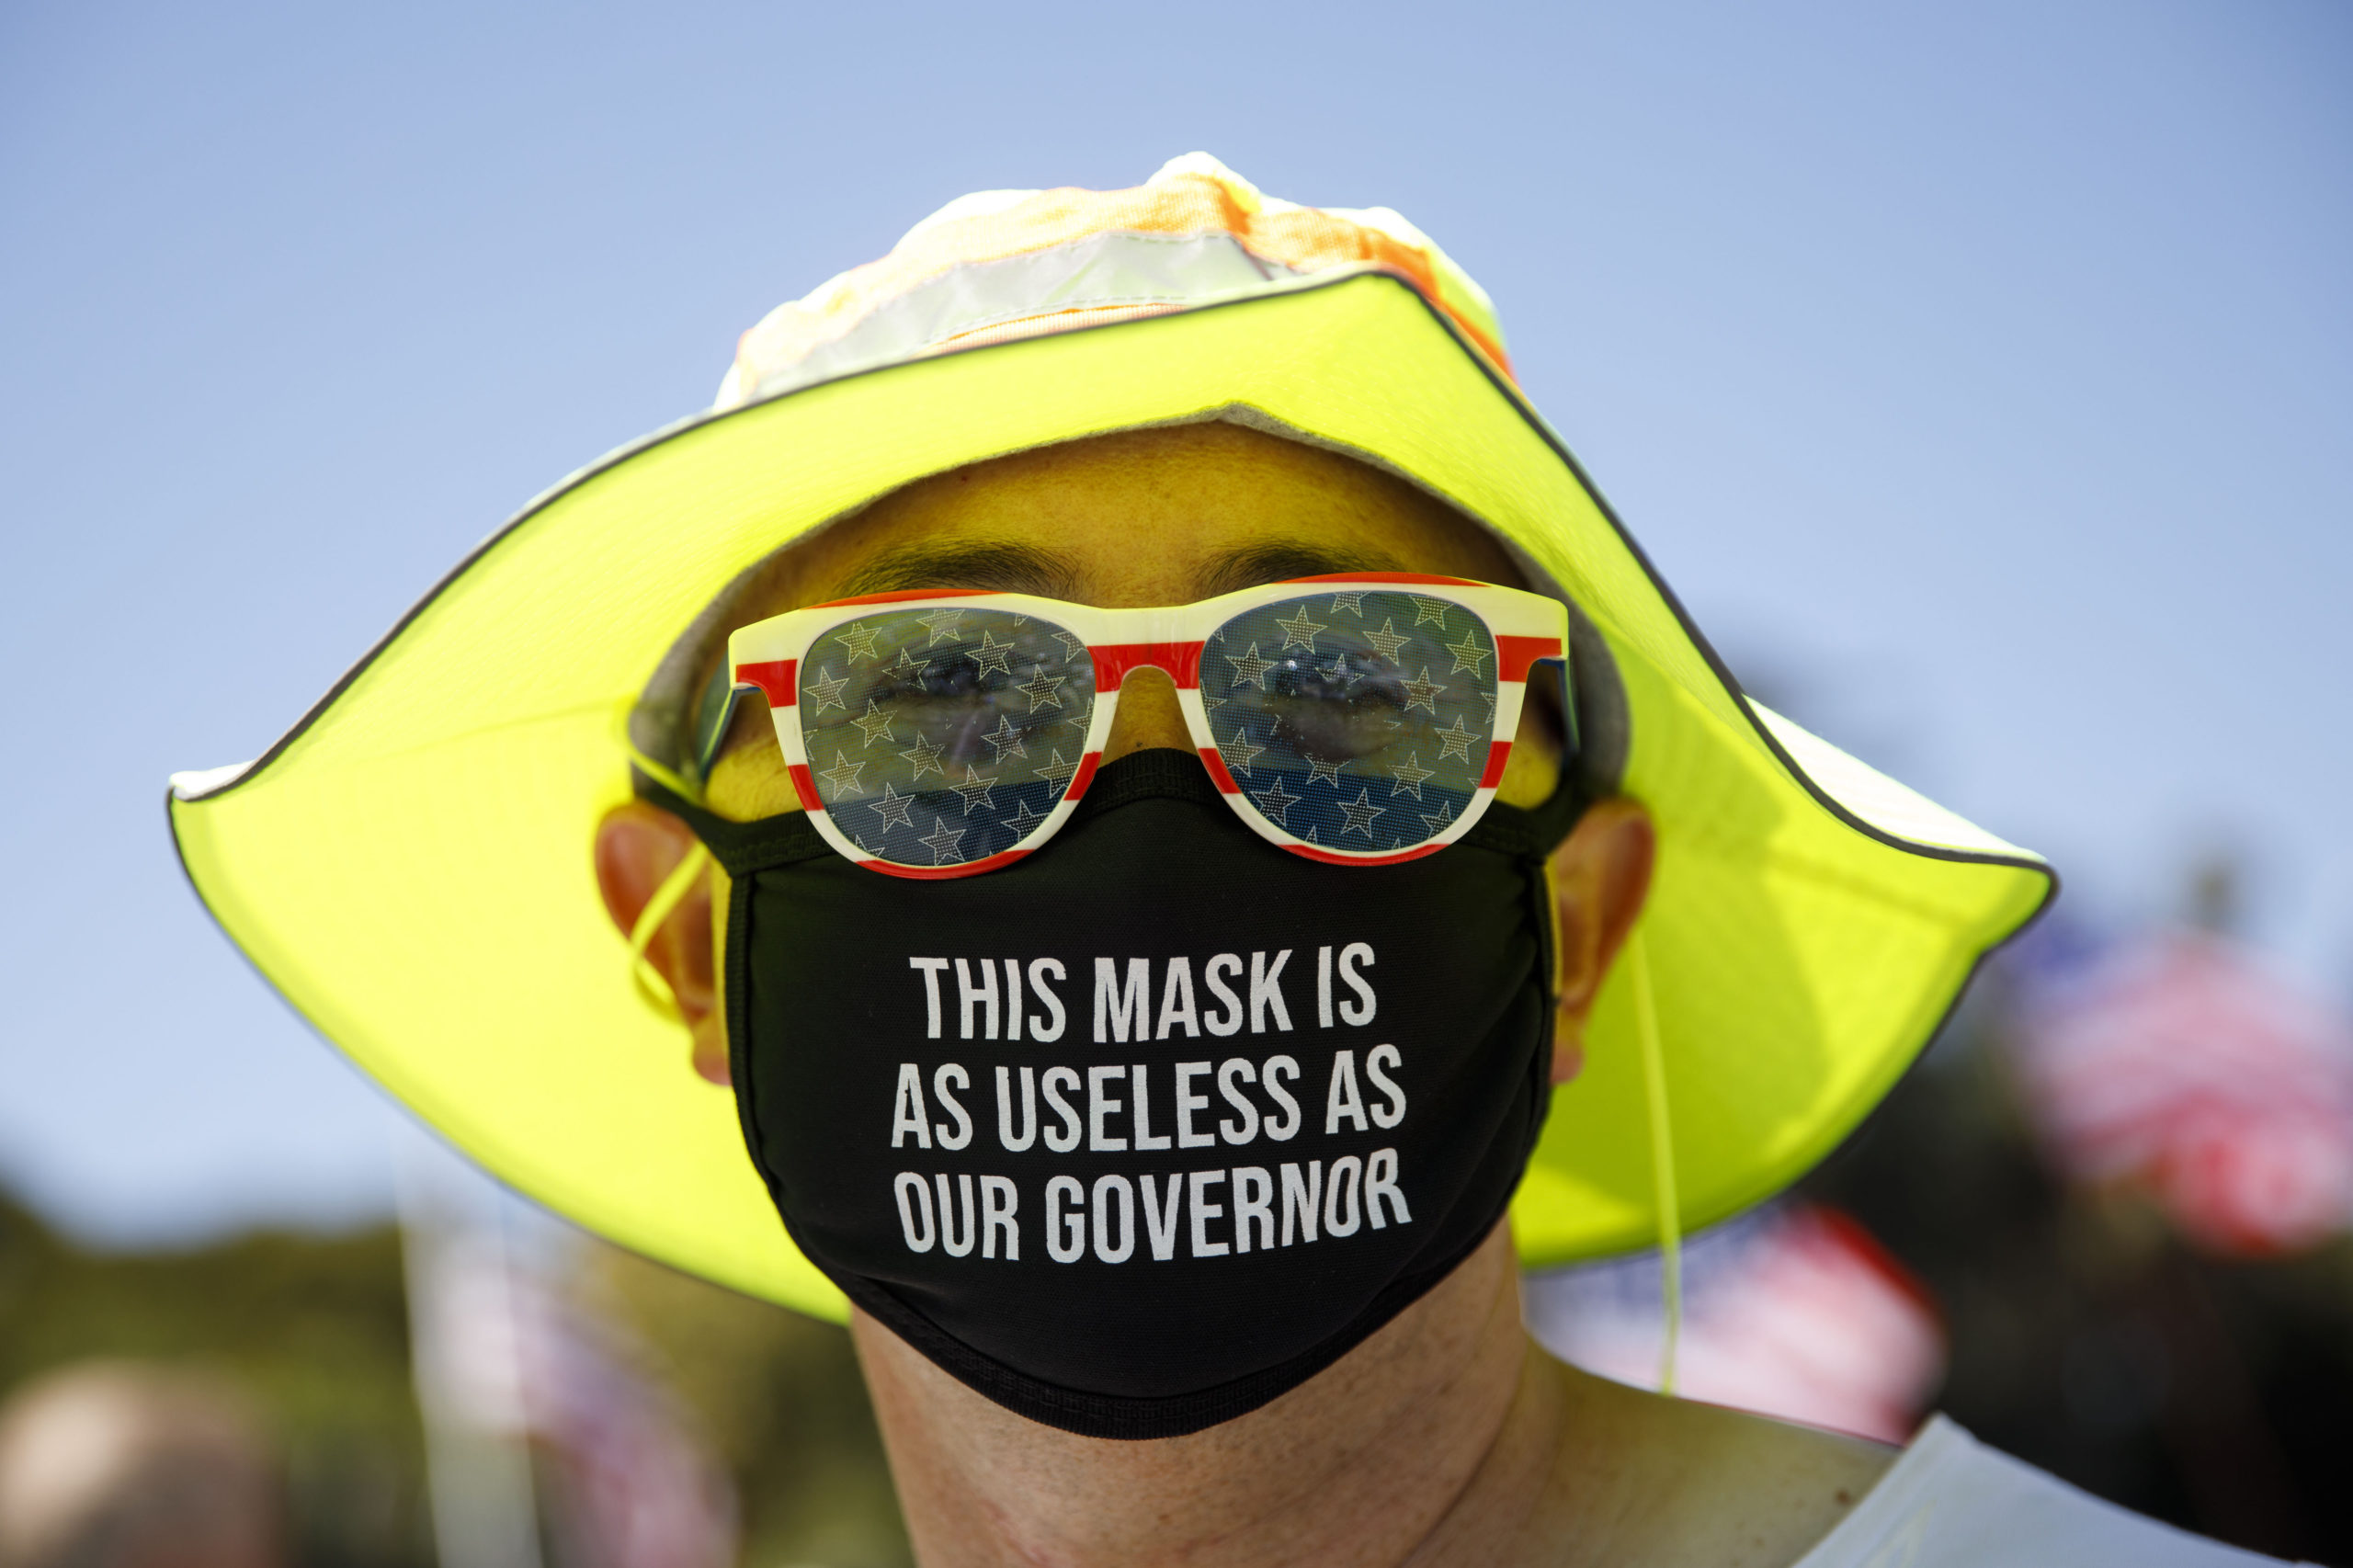 A demonstrator wears a facemask referring to the governor of California during a WalkAway rally in support of the US president on August 8, 2020 in Beverly Hills, California. (Photo by Patrick T. Fallon / AFP) (Photo by PATRICK T. FALLON/AFP via Getty Images)